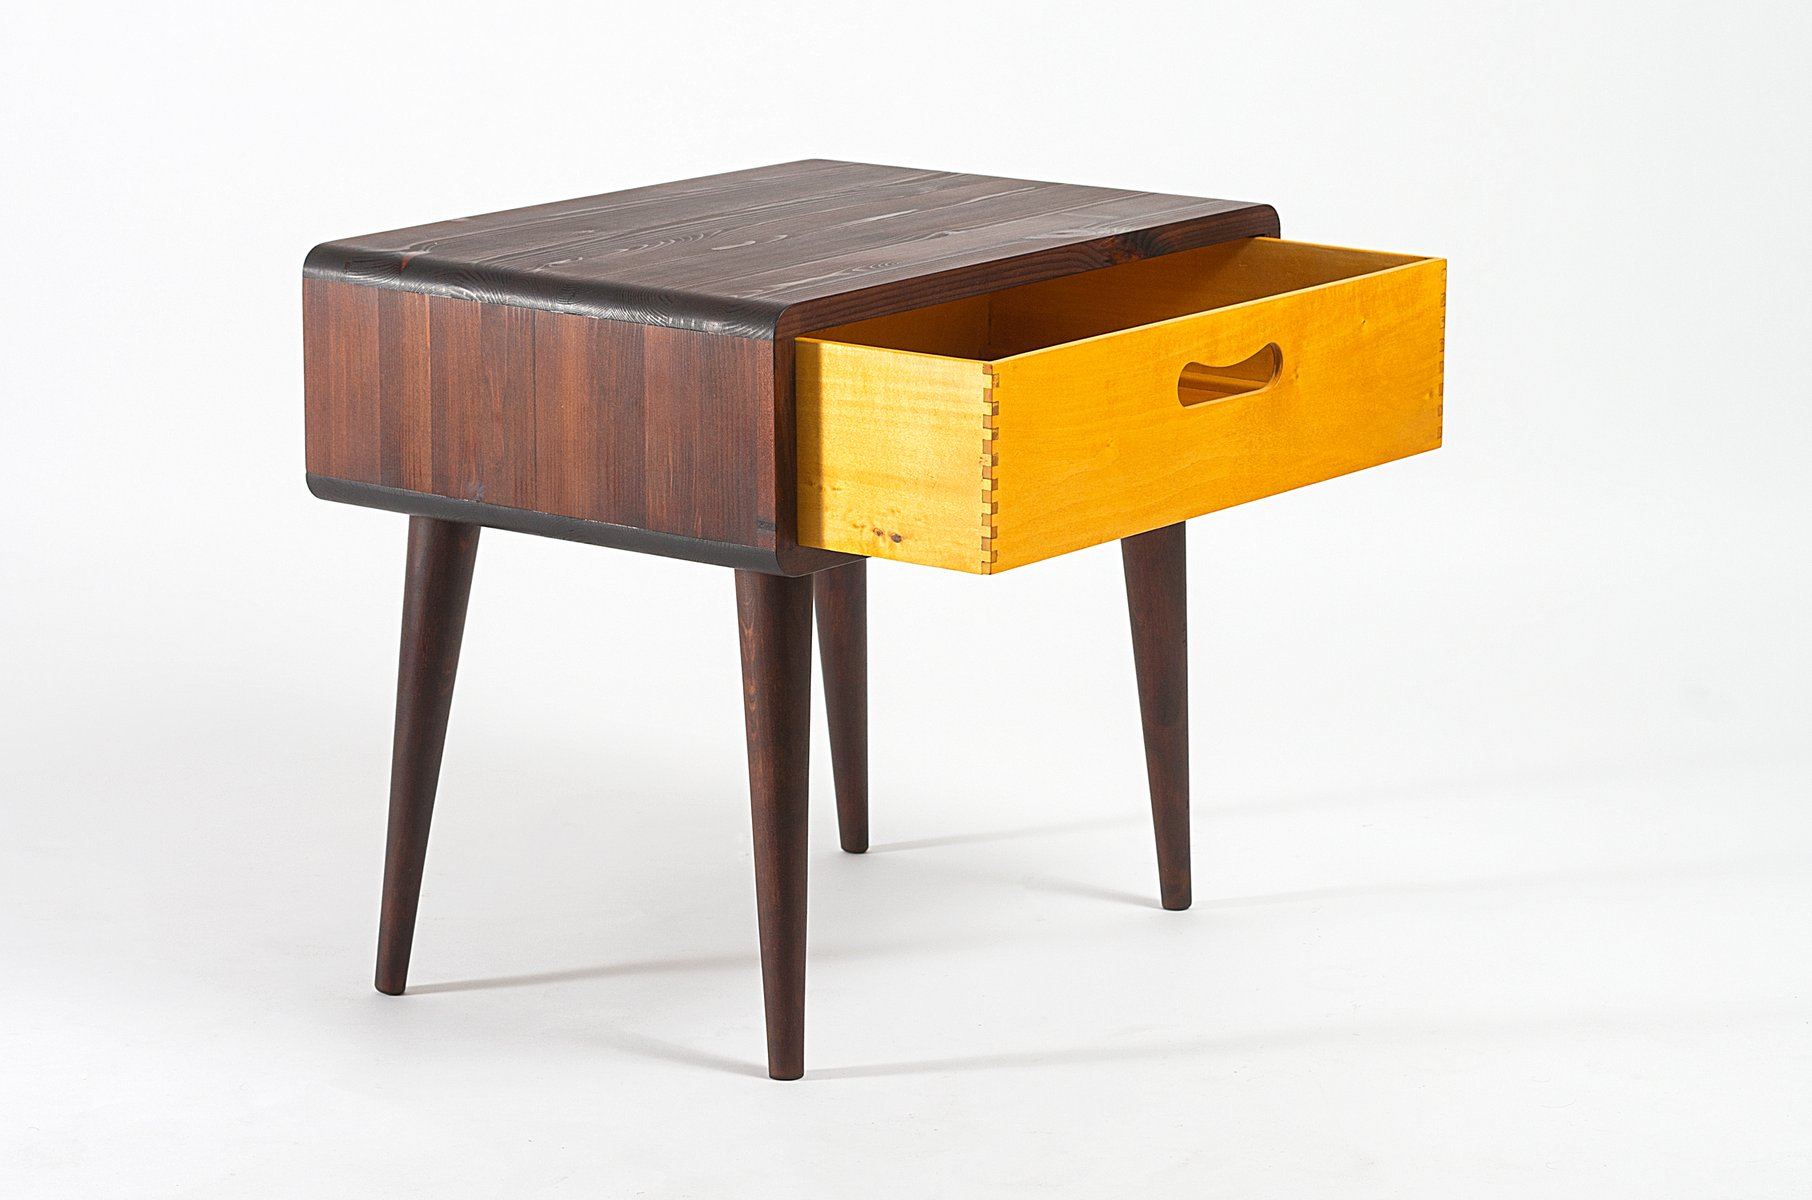 midcentury side table with drawer for sale at pamono - midcentury side table with drawer  previous